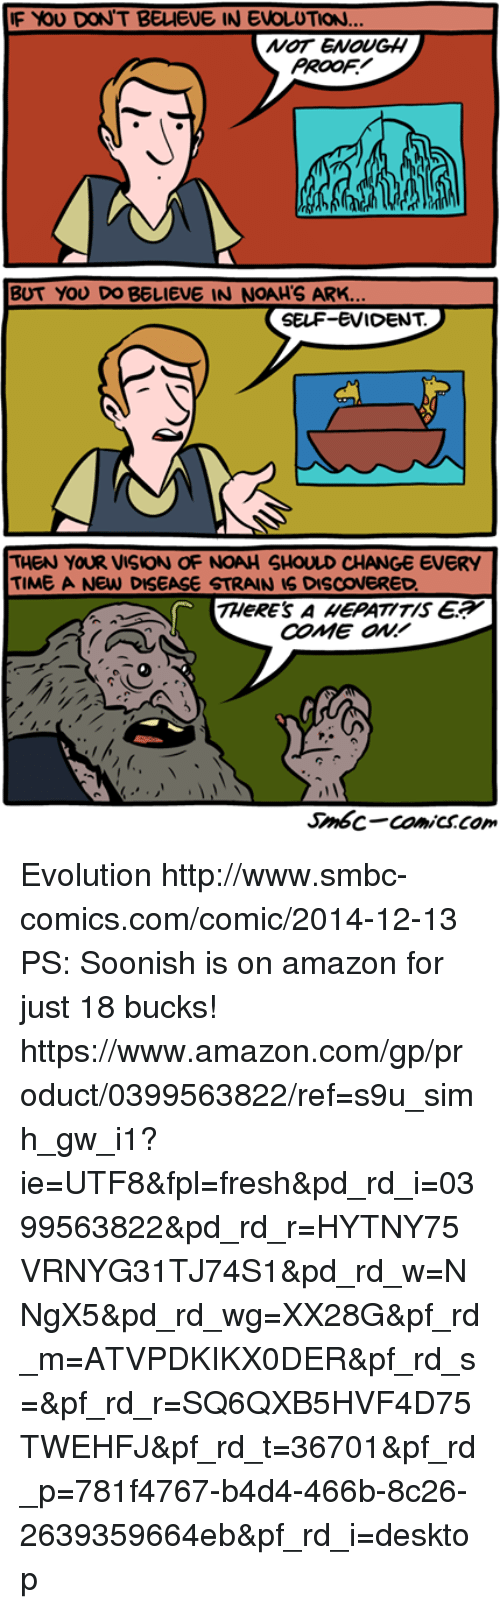 Amazon, Fresh, and Memes: F YOU DON'T BELIEVE IN EVOLUTION  NOT ENOUGH  PROOF  BUT YOU DO BELIEVE IN NOAH'S ARK.  SELF-EVIDENT.  THEN YOUR VISION OF NOAH SHOULD CHANGE EVERY  TIME A NEW DISEASE STRAIN IS DISCOVERED  THeRE'S A EPATITIS E  COME ON!  Smbc-comiCSCom Evolution http://www.smbc-comics.com/comic/2014-12-13  PS: Soonish is on amazon for just 18 bucks! https://www.amazon.com/gp/product/0399563822/ref=s9u_simh_gw_i1?ie=UTF8&fpl=fresh&pd_rd_i=0399563822&pd_rd_r=HYTNY75VRNYG31TJ74S1&pd_rd_w=NNgX5&pd_rd_wg=XX28G&pf_rd_m=ATVPDKIKX0DER&pf_rd_s=&pf_rd_r=SQ6QXB5HVF4D75TWEHFJ&pf_rd_t=36701&pf_rd_p=781f4767-b4d4-466b-8c26-2639359664eb&pf_rd_i=desktop